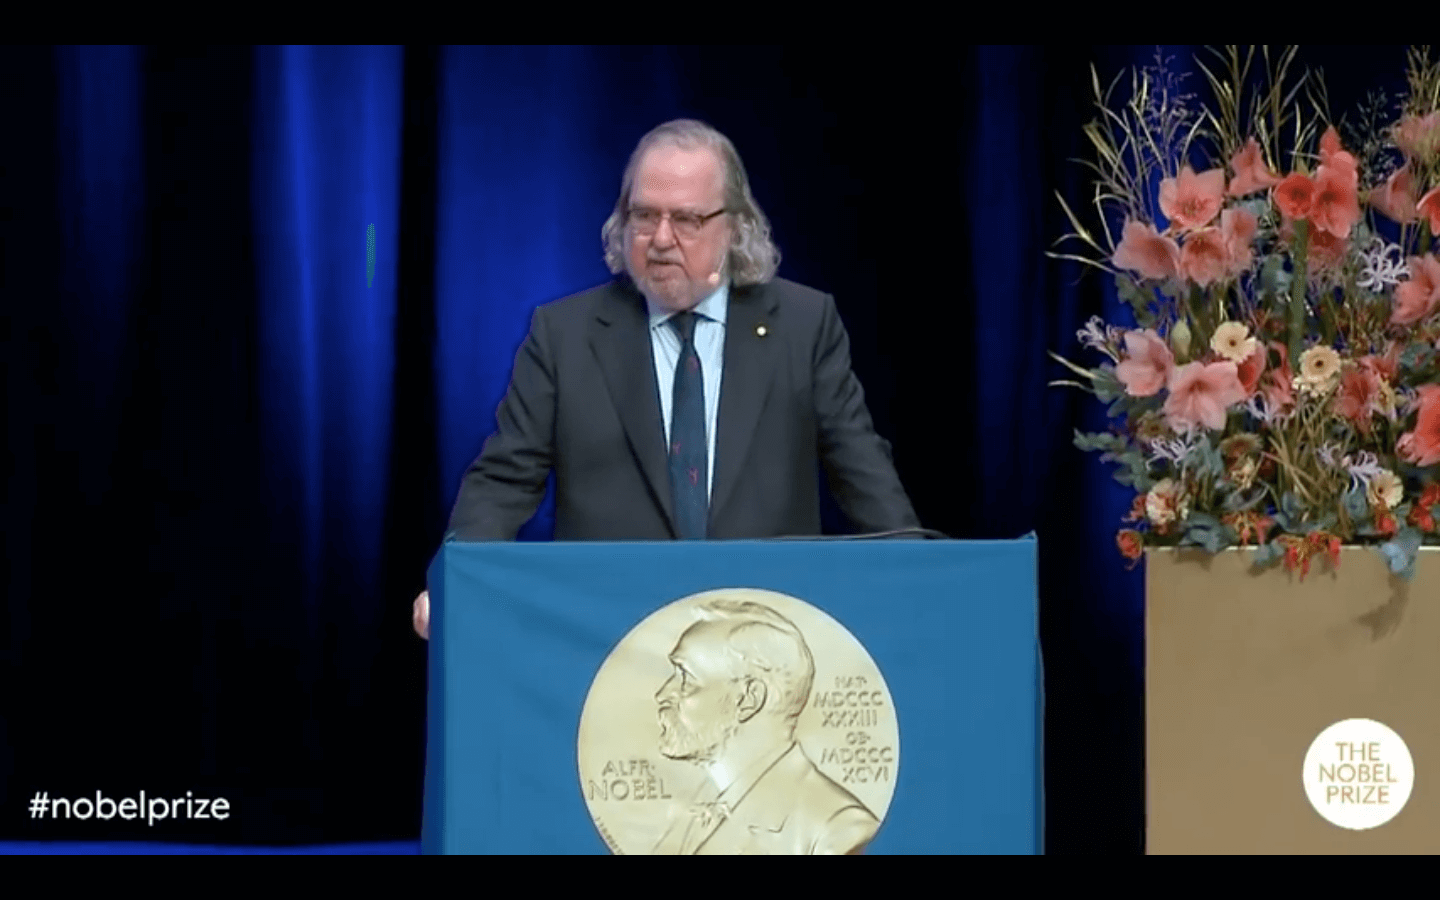 James P. Allison, Ph.D., delivered his Nobel Lecture on Dec. 7, 2018 at the Karolinska Institutet in Stockholm, a requirement of receiving his joint Nobel Prize in Physiology or Medicine in Sweden on Dec. 10, 2018. (Image from YouTube)